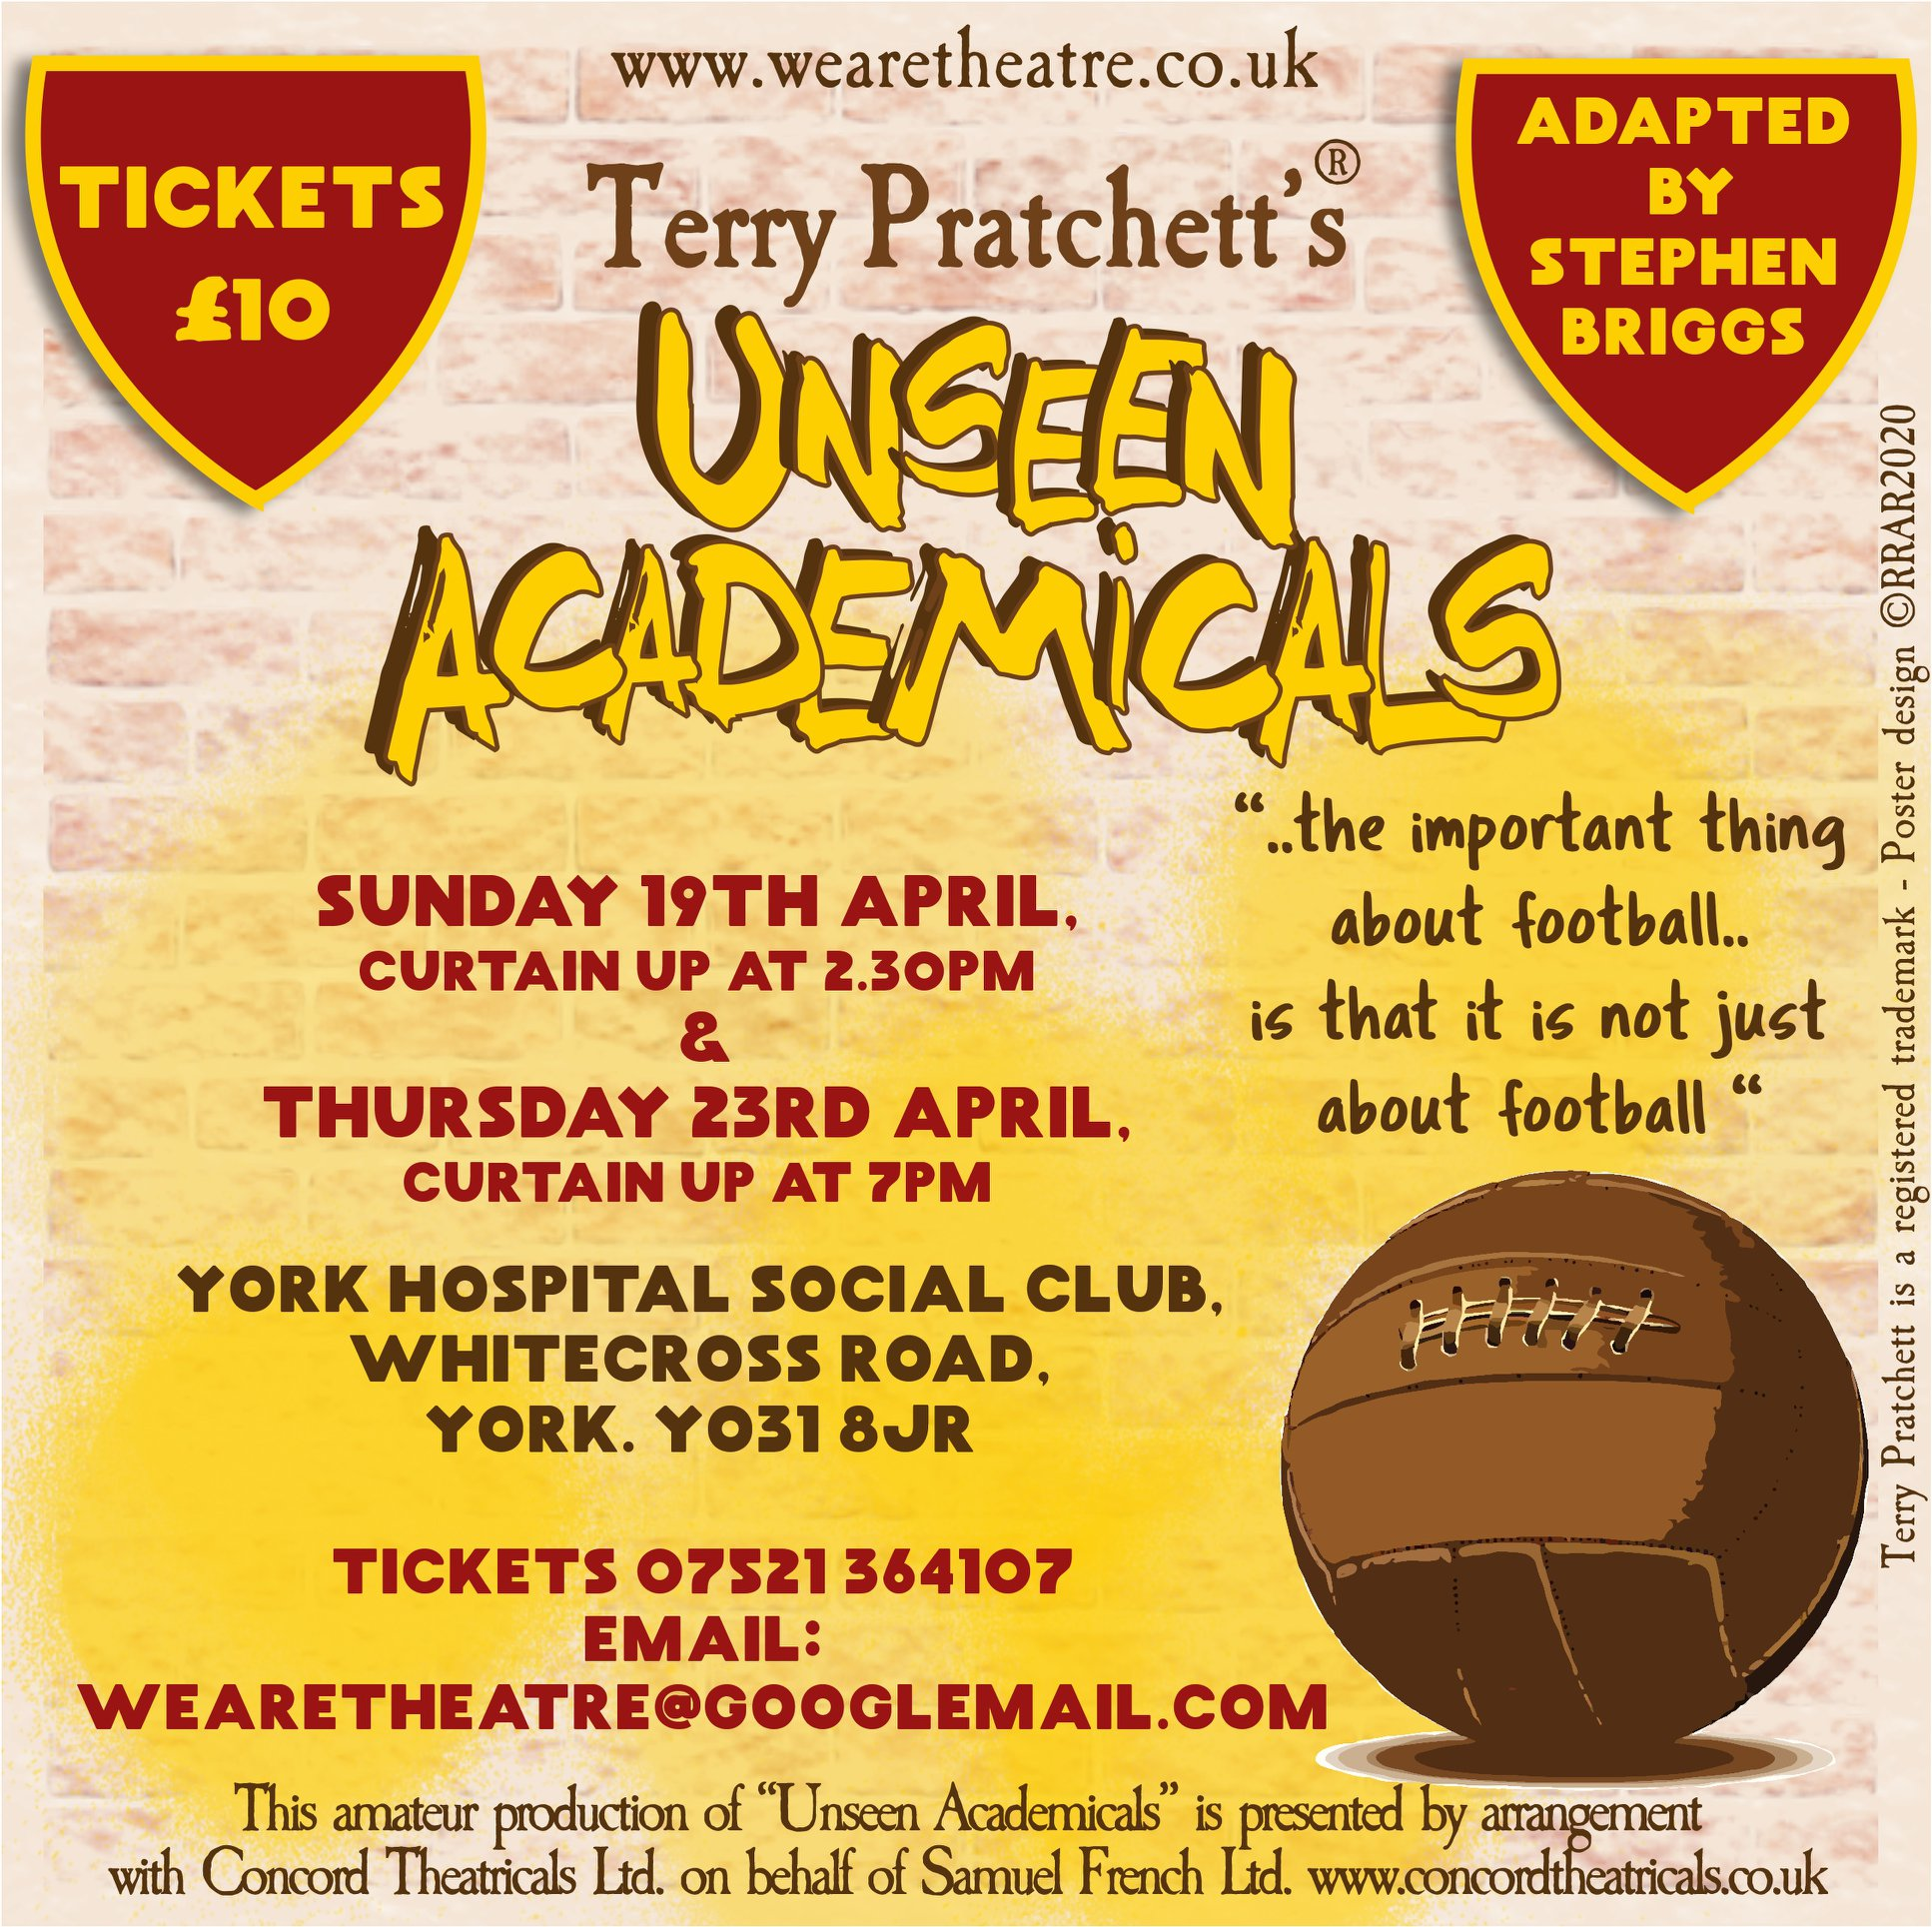 'Unseen Academicals' based on Terry Pratchett's novel